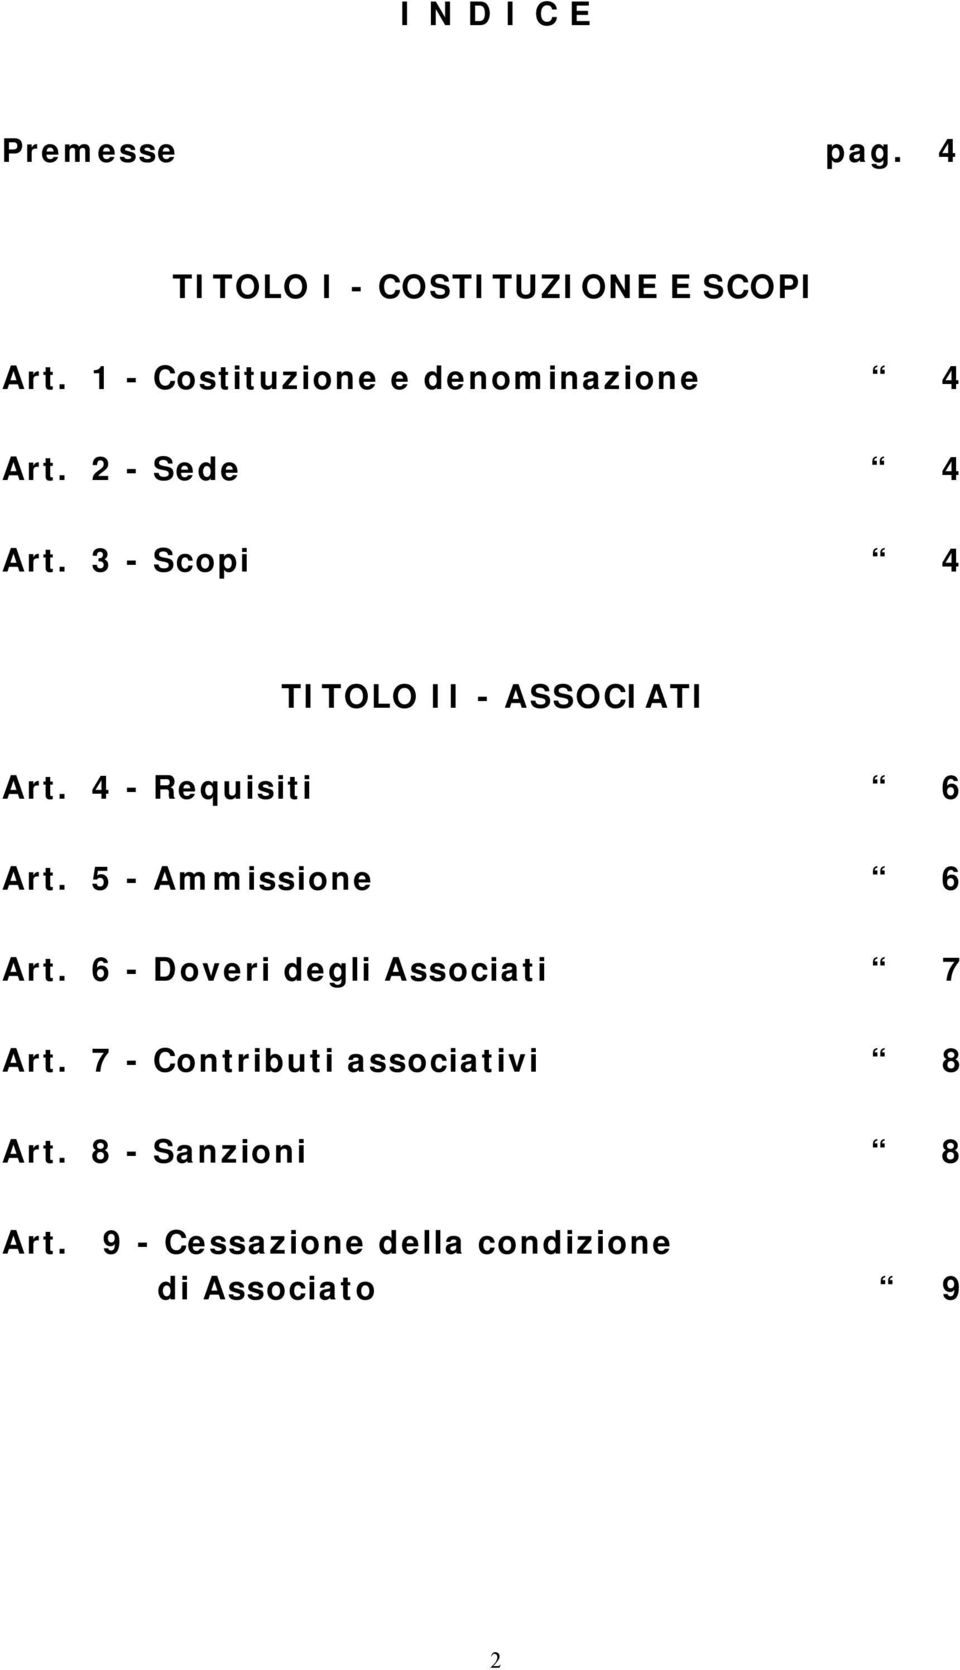 3 - Scopi 4 TITOLO II - ASSOCIATI Art. 4 - Requisiti 6 Art. 5 - Ammissione 6 Art.